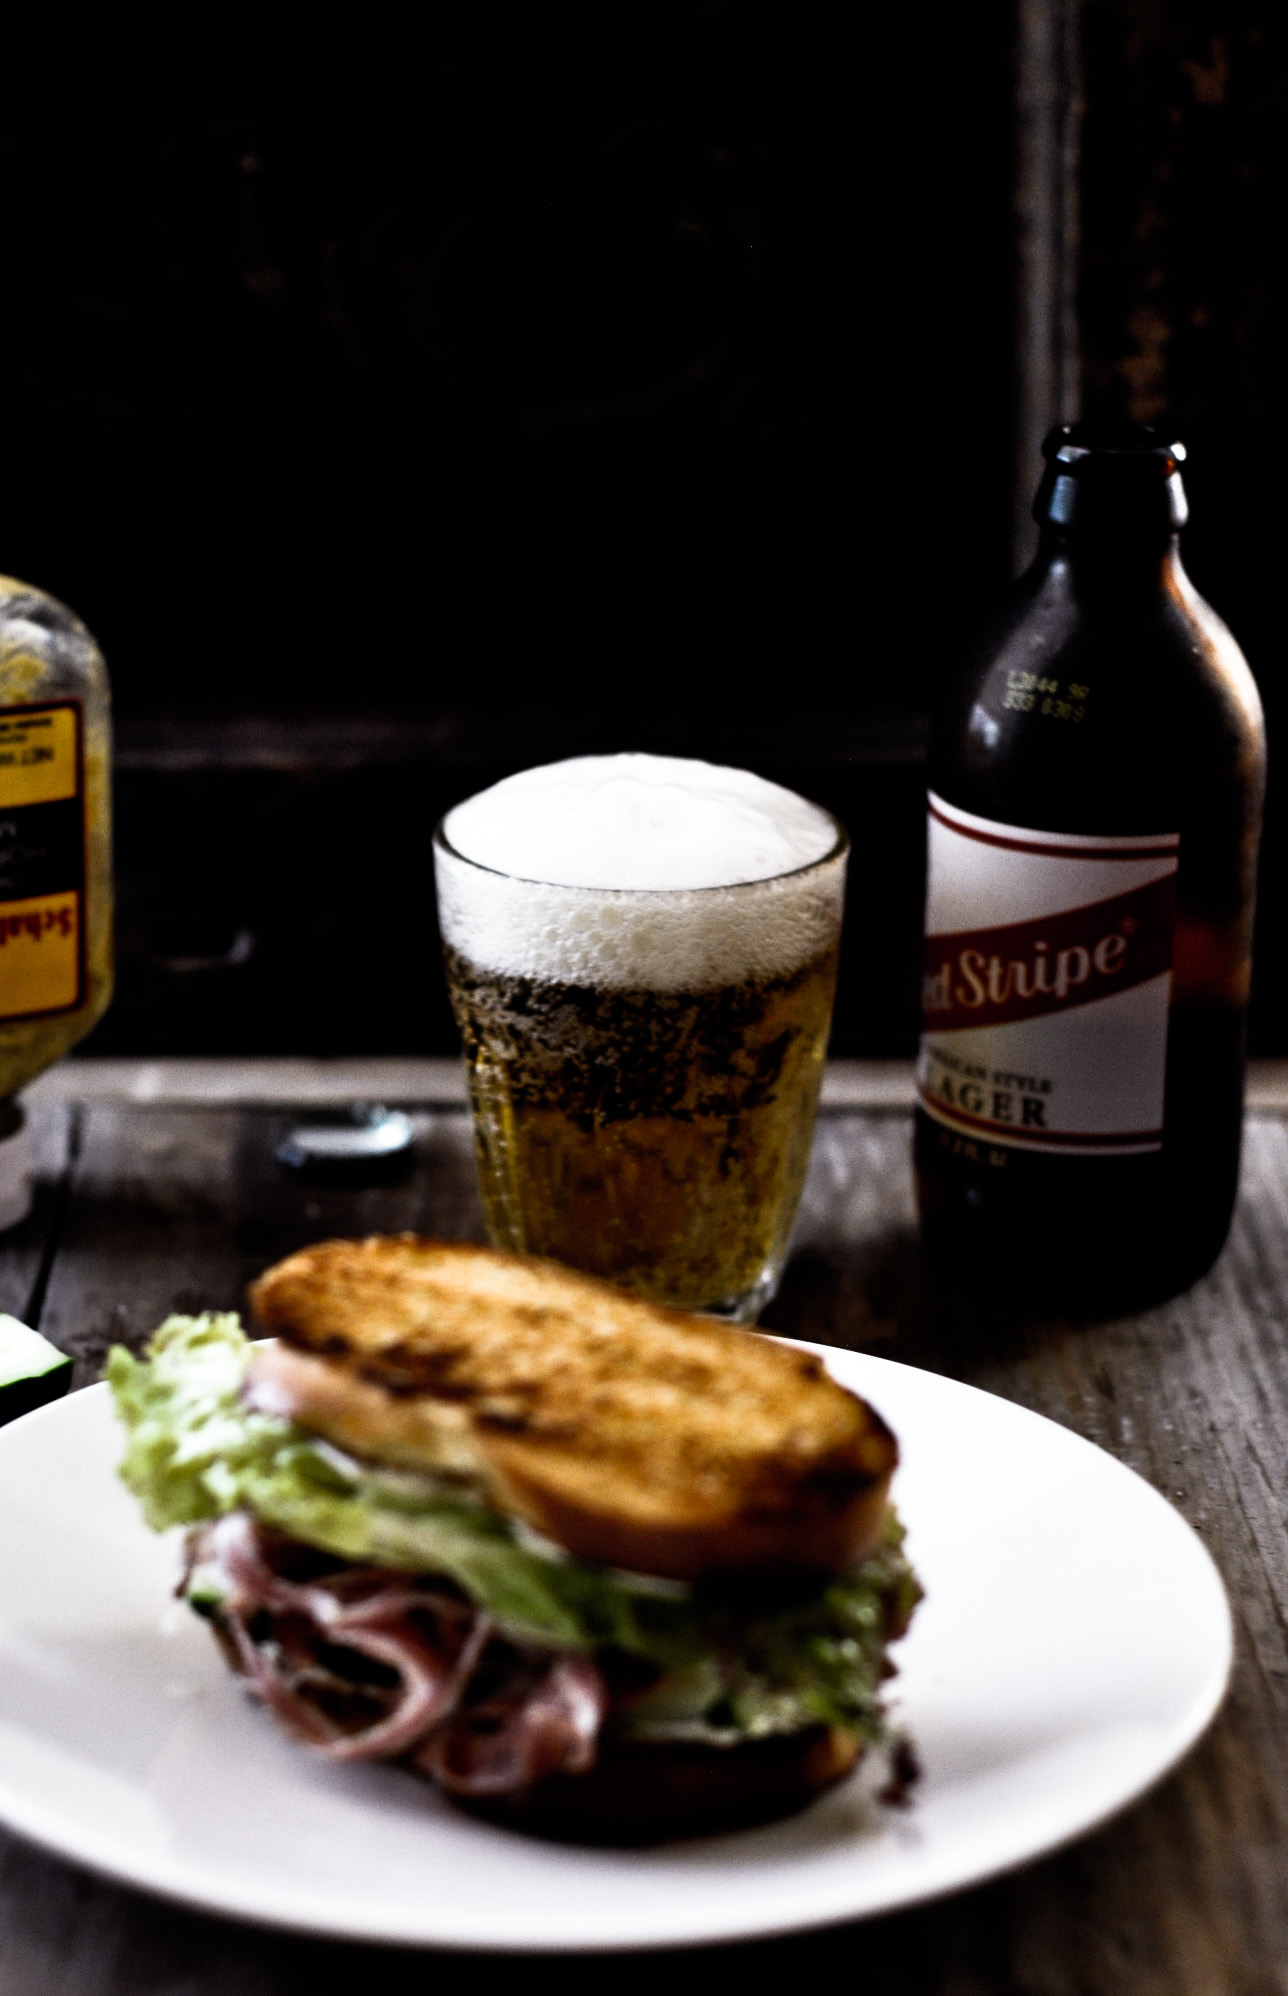 Beer with Sandwich